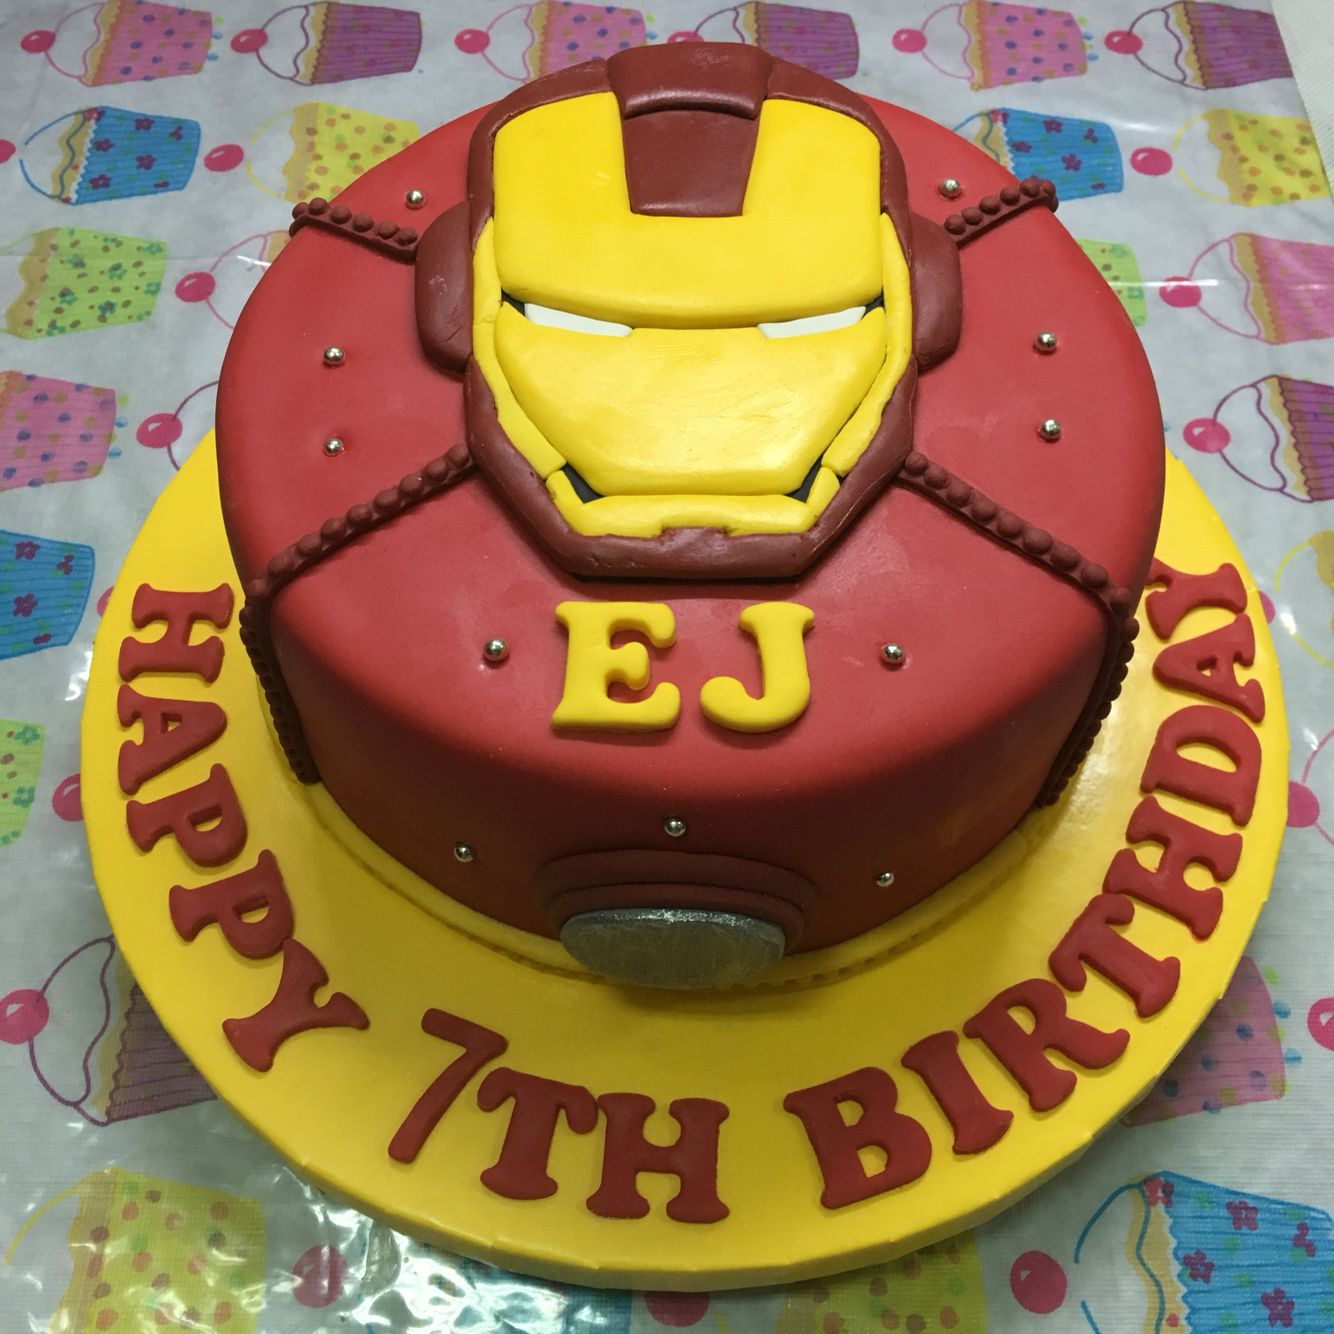 Astounding Our Very Own Ironman Cake For Ejs 7Th Bday With Images Birthday Cards Printable Trancafe Filternl